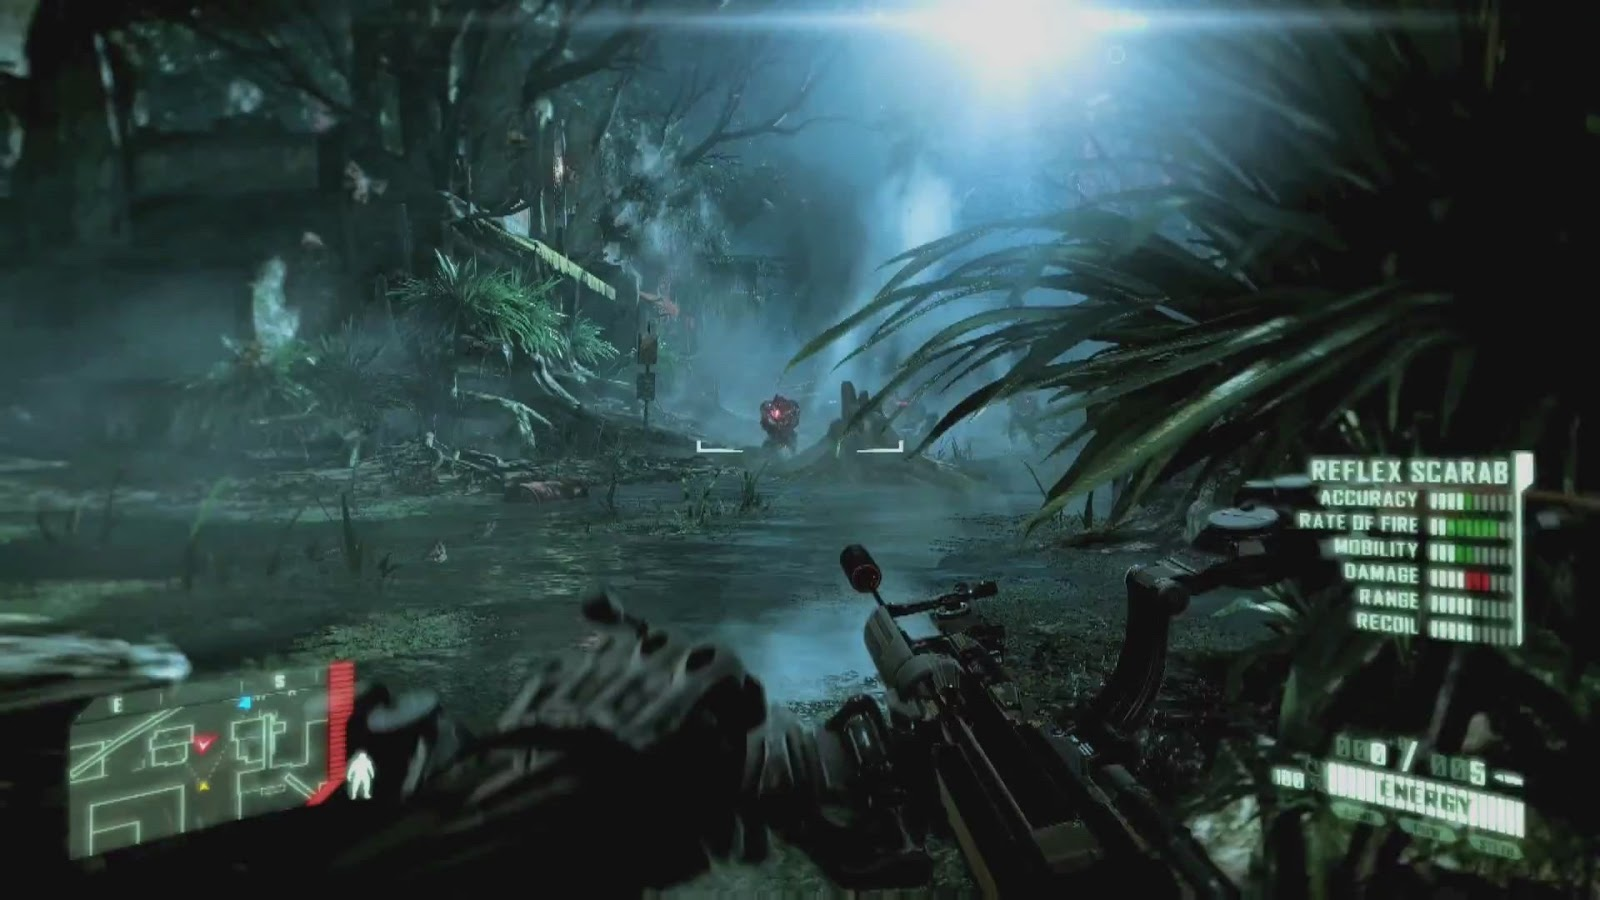 crysis 3 prophet and predator bow wallpapers - Mixed Hunt Crysis 3 prophet and predator bow hd wallpaper